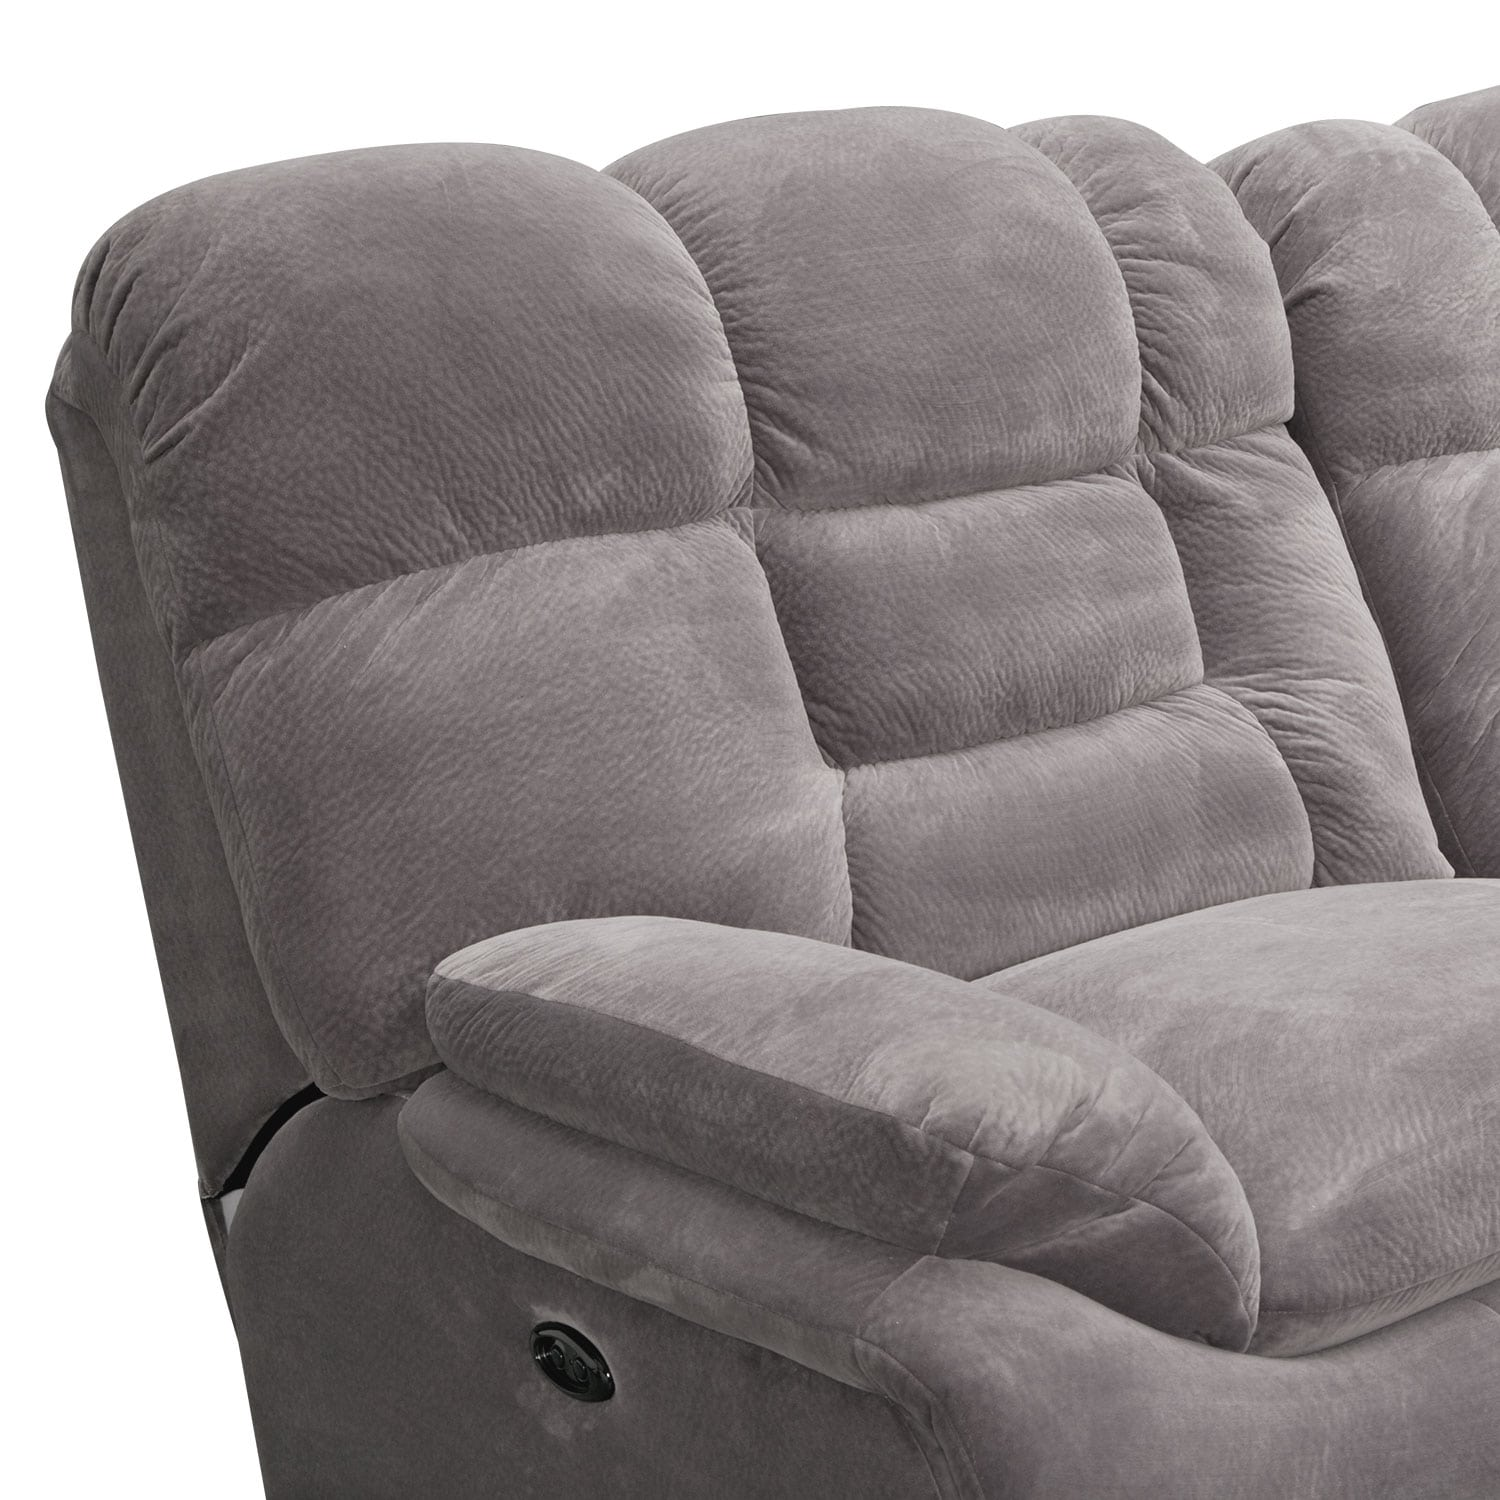 Power Reclining Sectional With Right Press Back Chaise By: Big Softie 3-Piece Power Reclining Sectional With Right